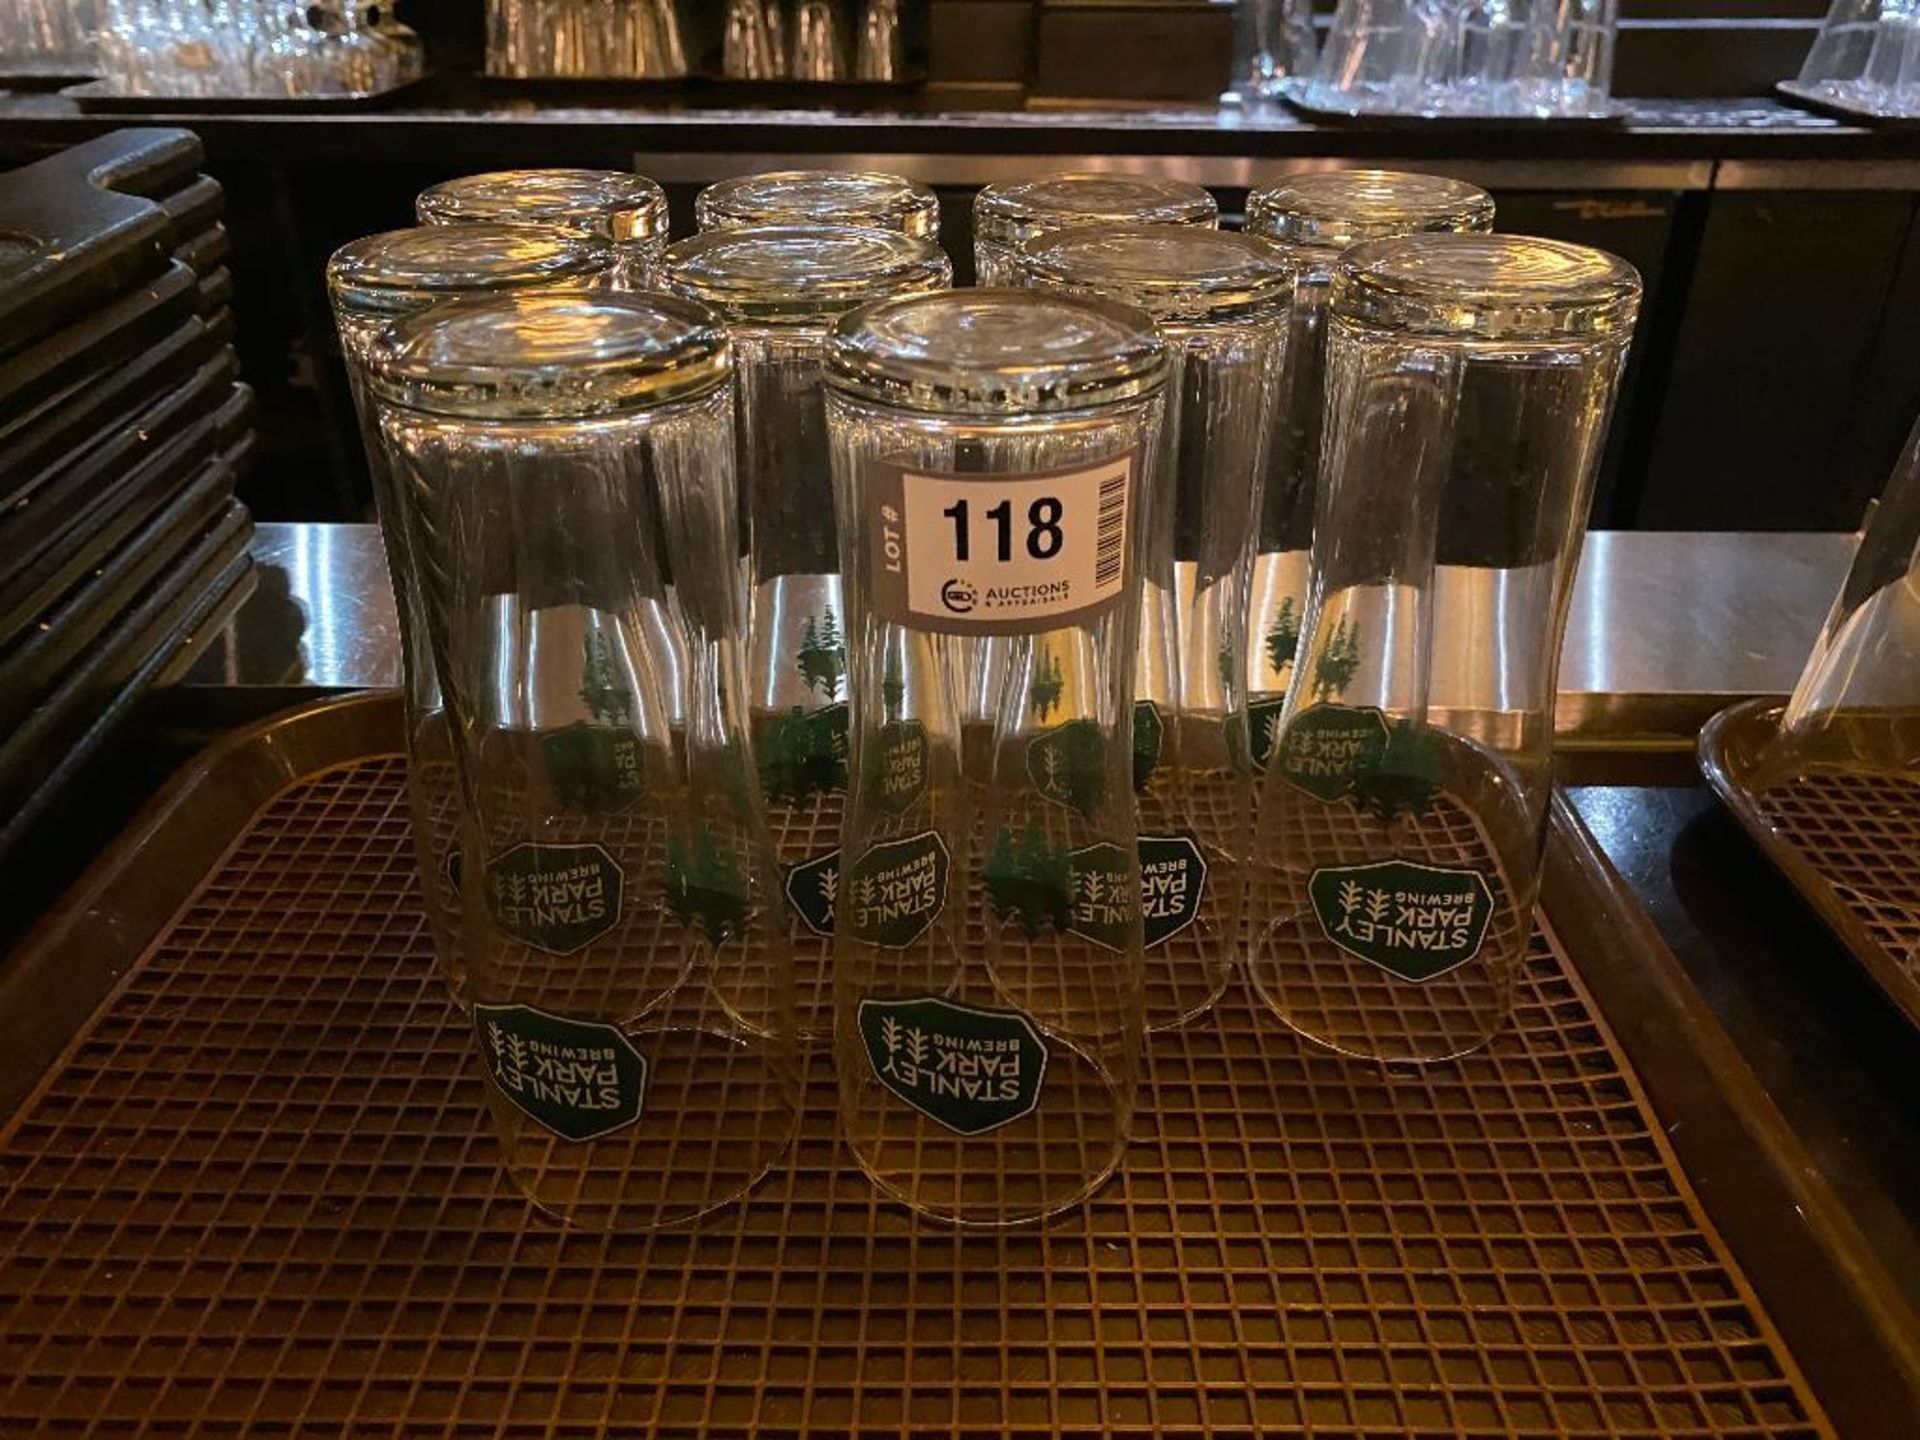 LOT OF (10) STANLEY PARK BREWING GLASSES - Image 2 of 2